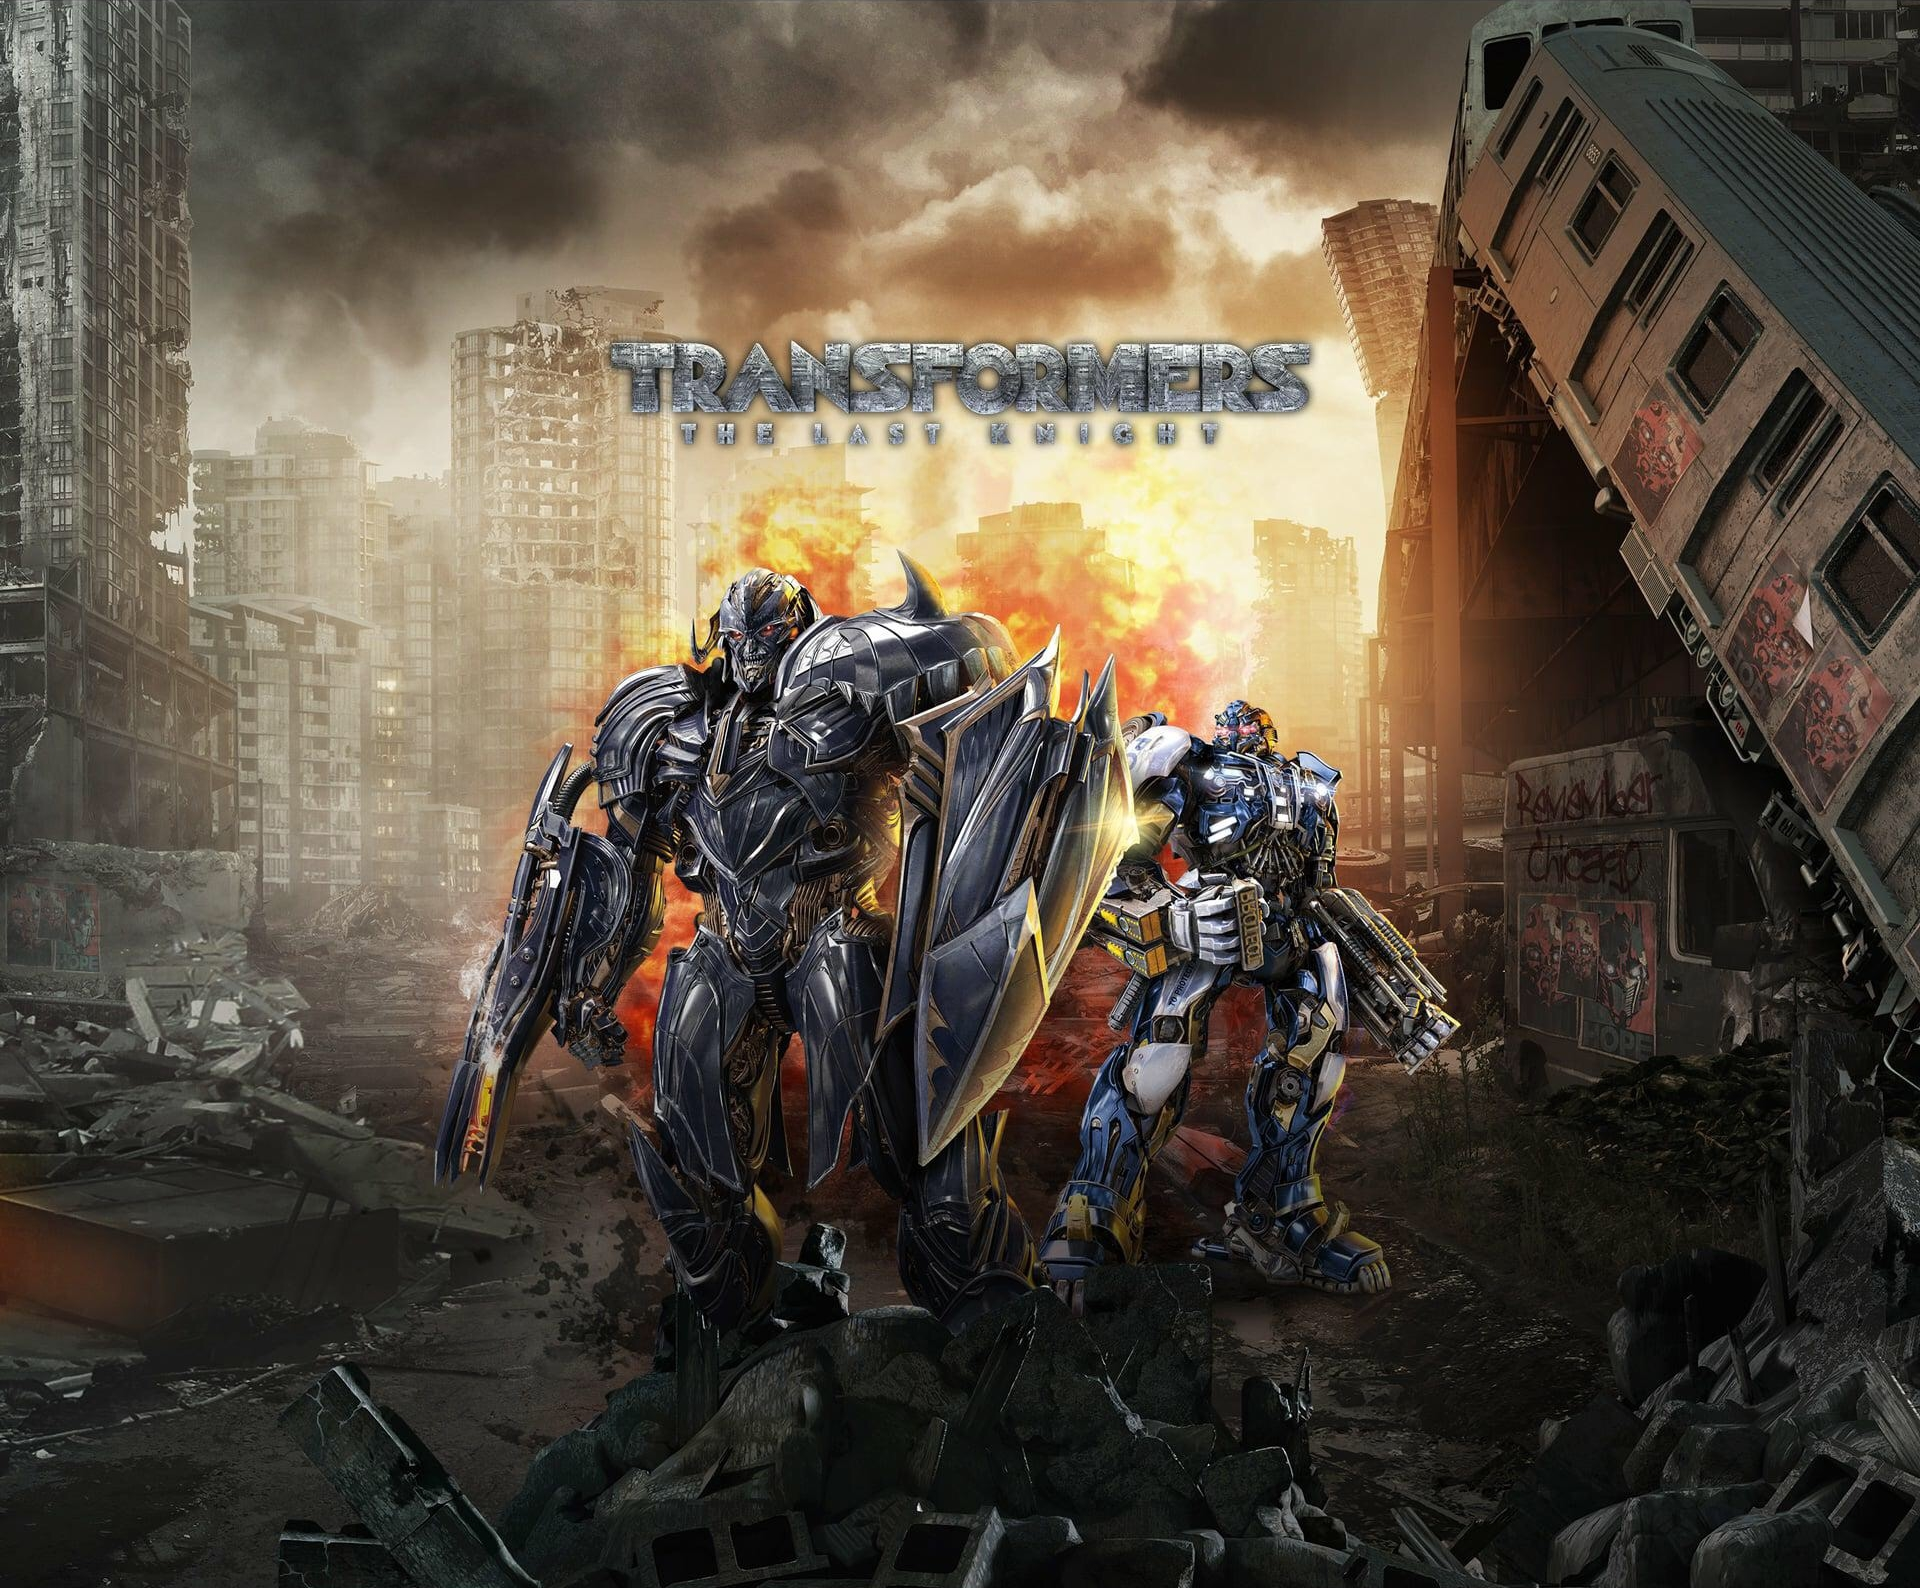 Transformers: The Last Knight App Available For Download